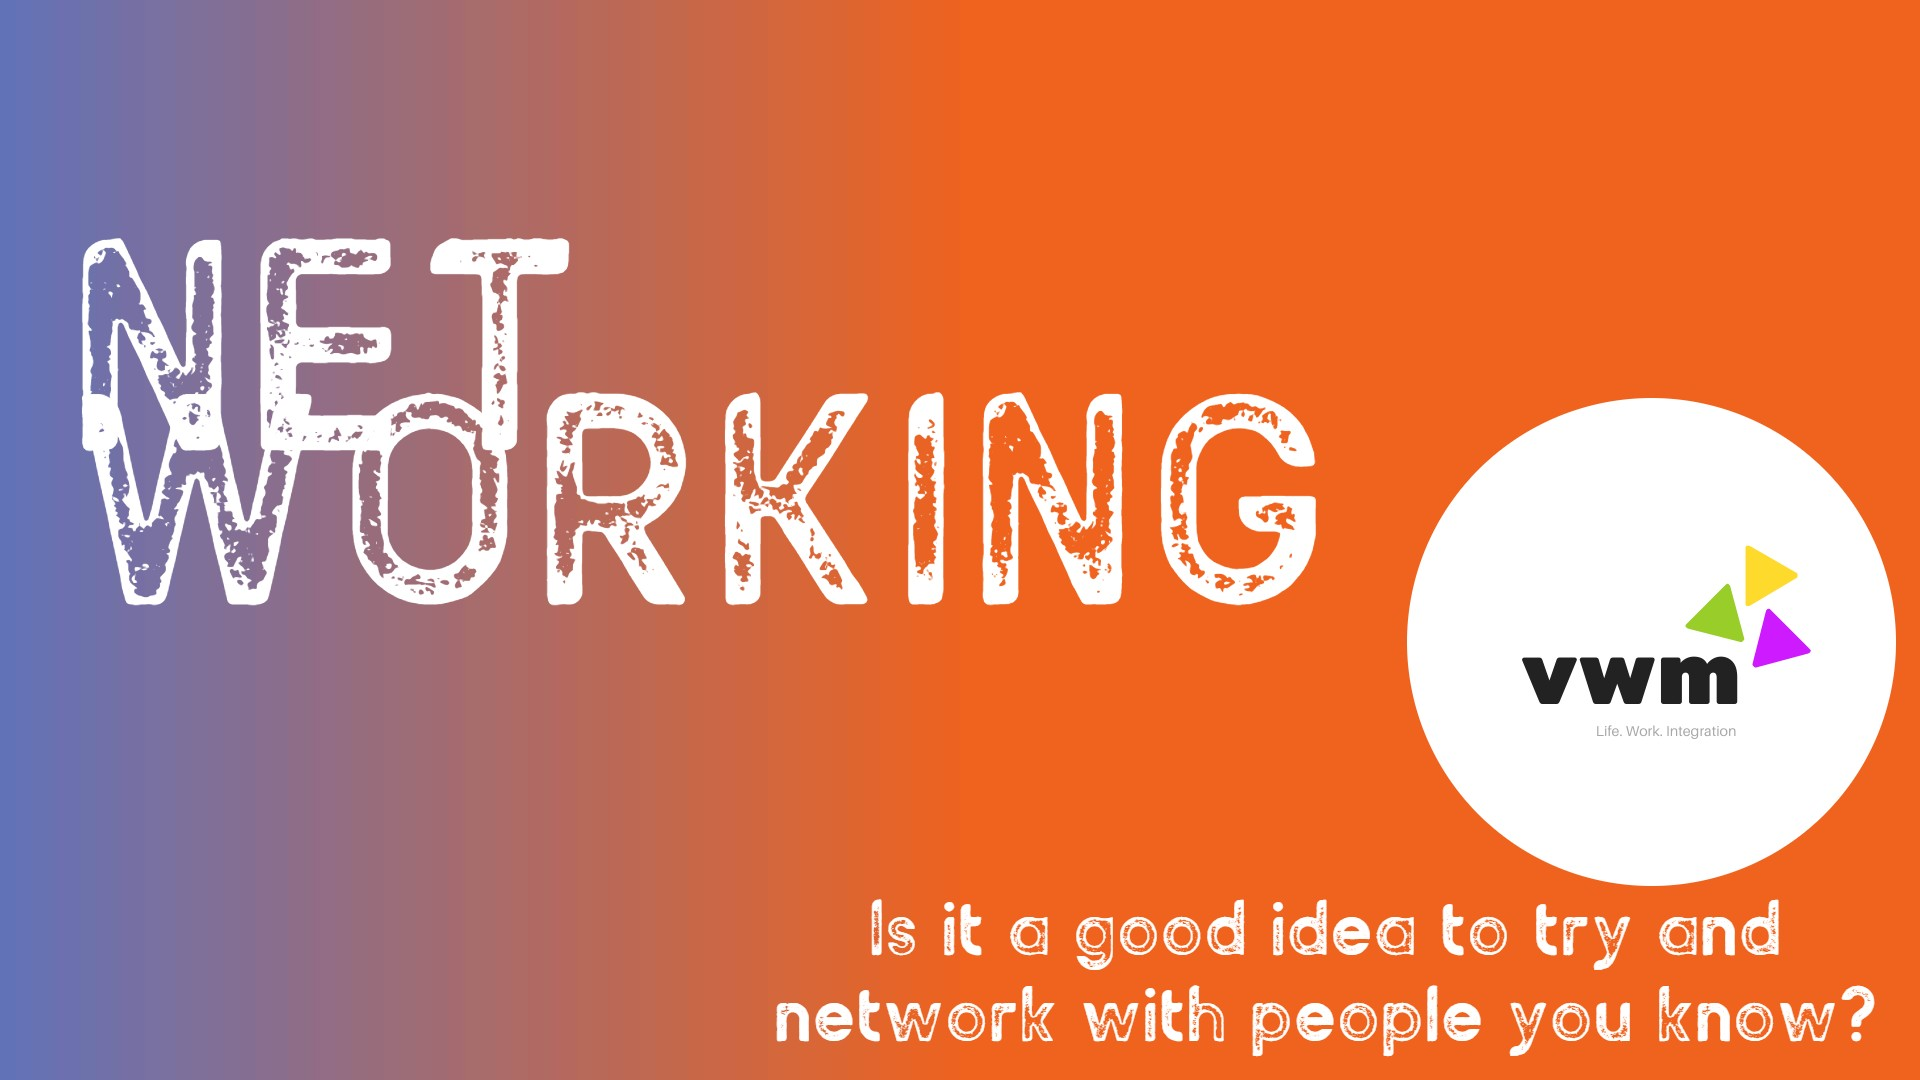 Networking is a good idea with strangers